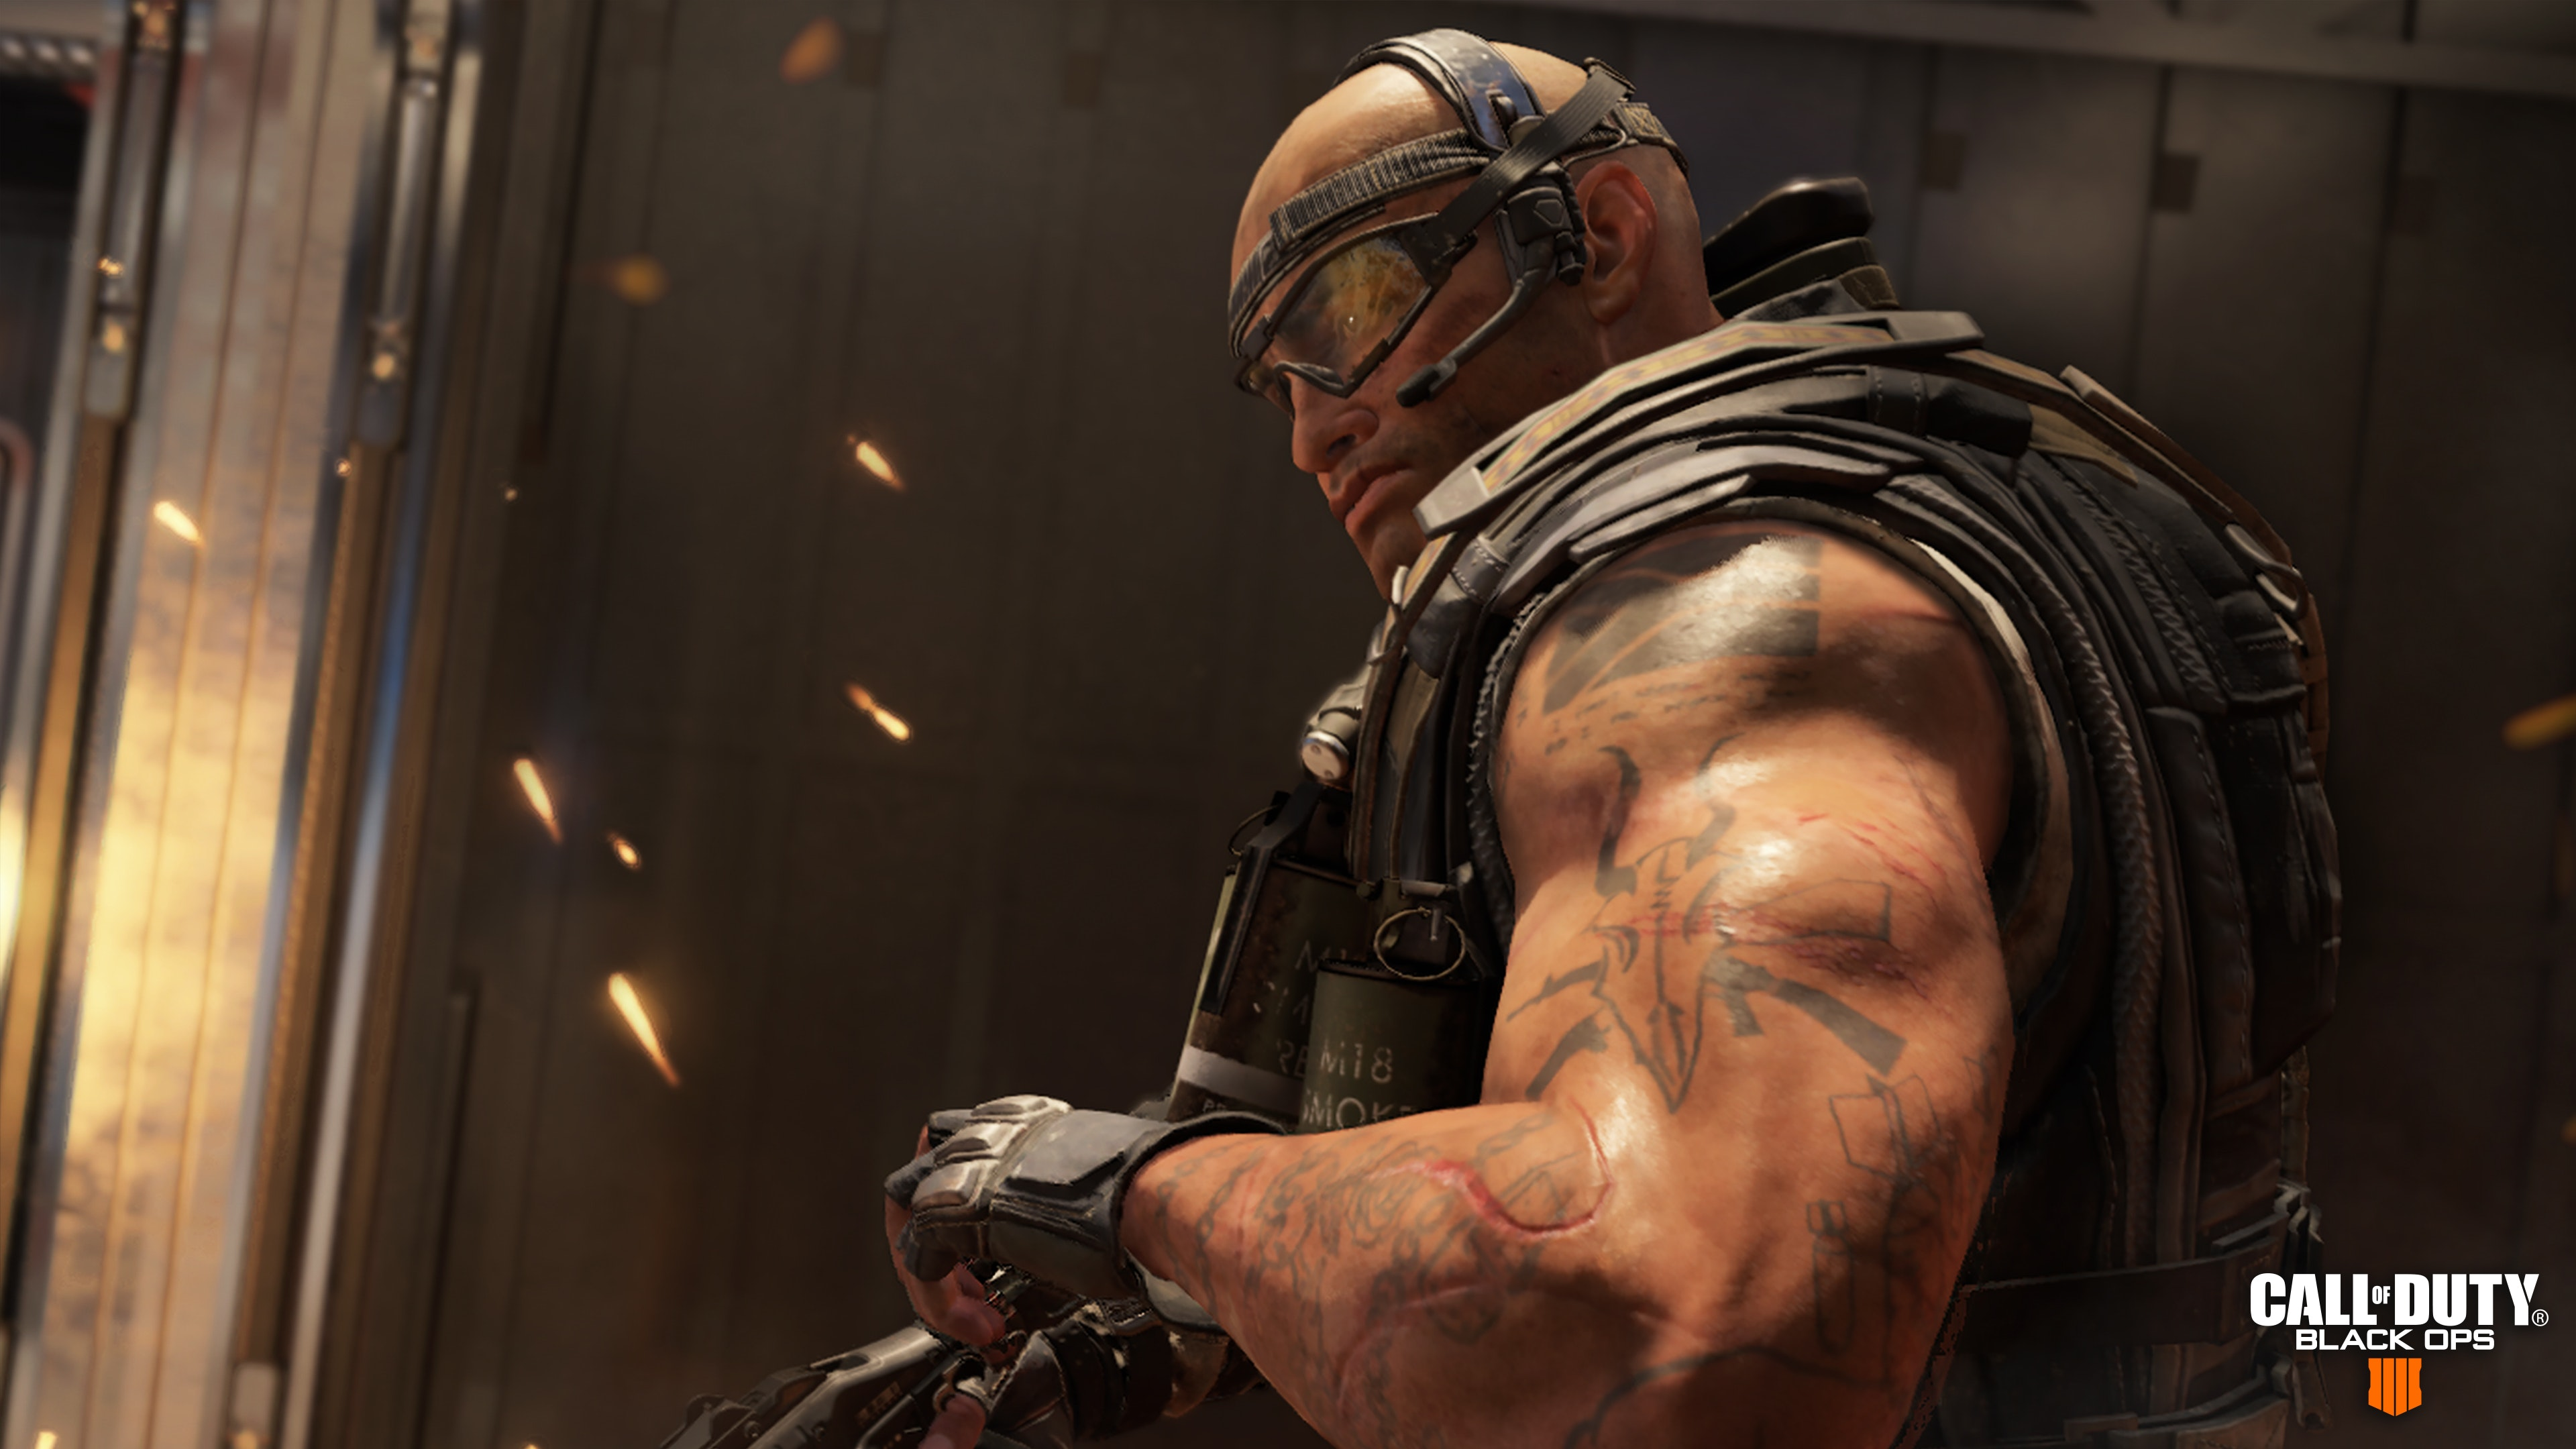 Call Of Duty: Black Ops 4 Box Art Leaks Ahead Of Reveal